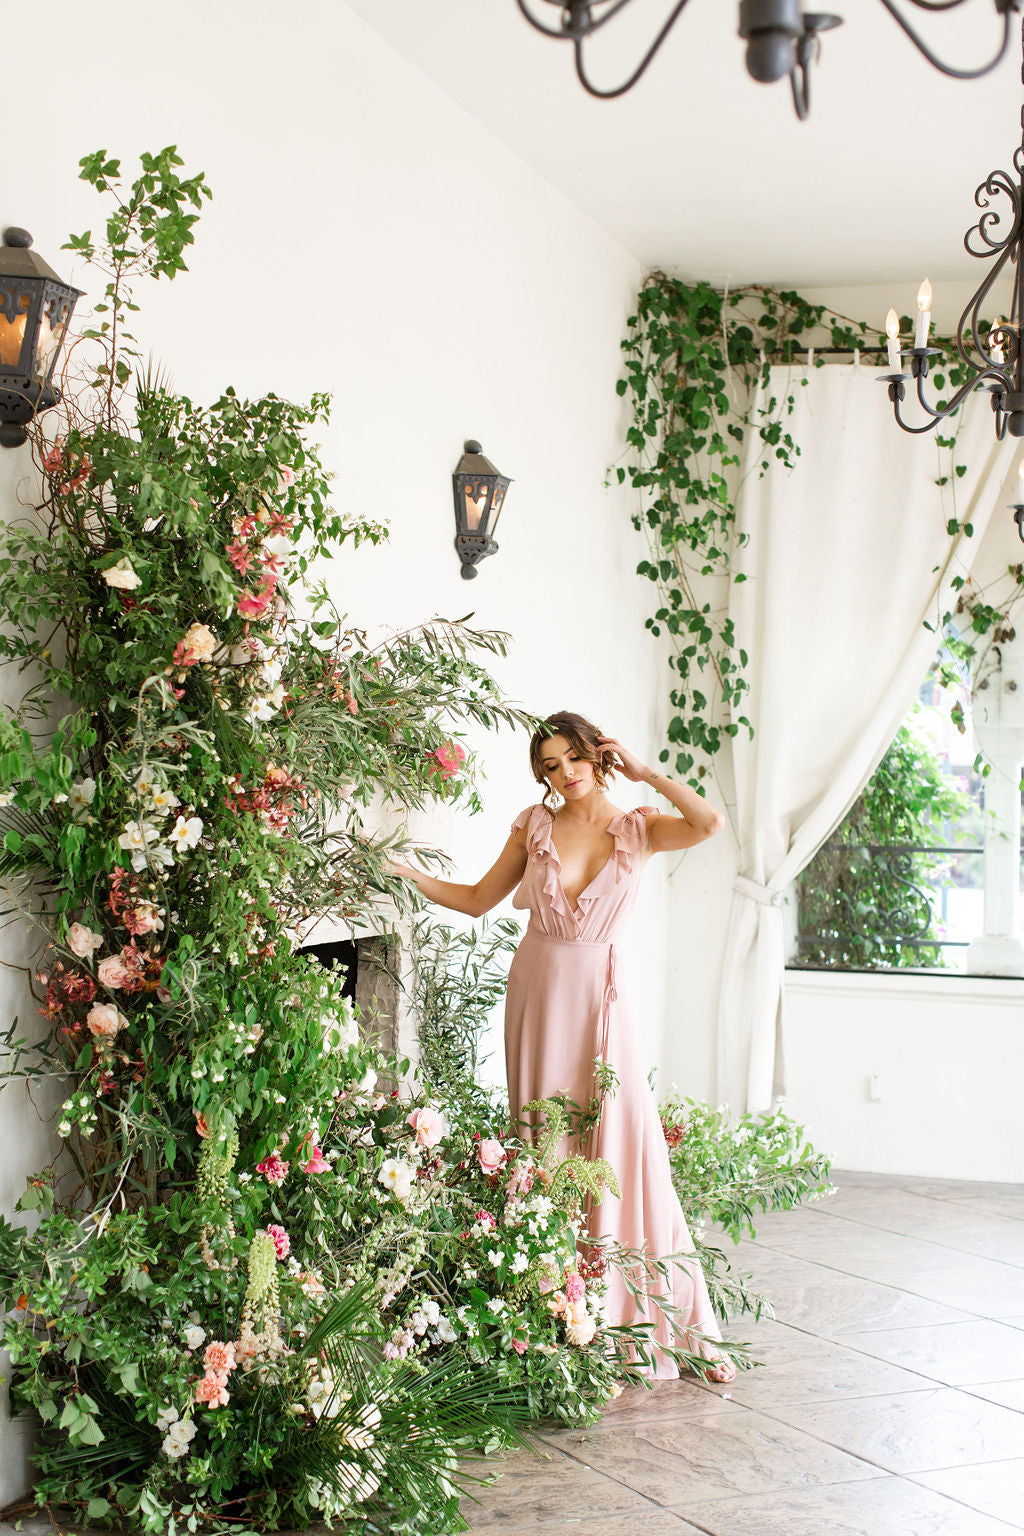 9 WAYS TO BE A MORE SUSTAINABLE FLORIST OR FLOWER LOVER!